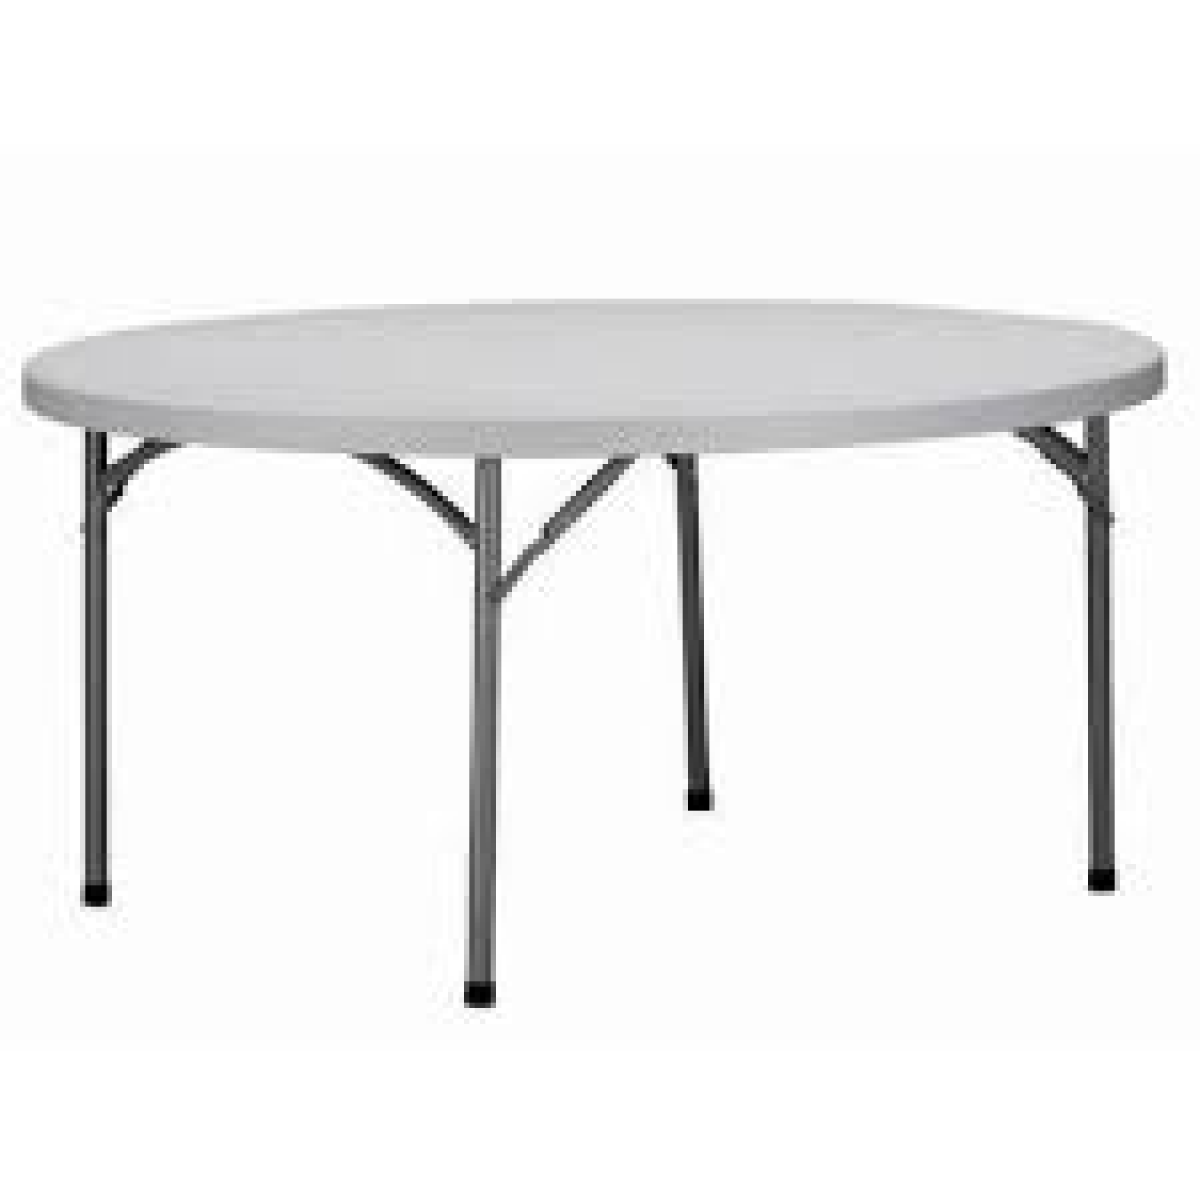 Location de tables rondes diam tre 183 cm 10 12 personnes for Table 30 personnes